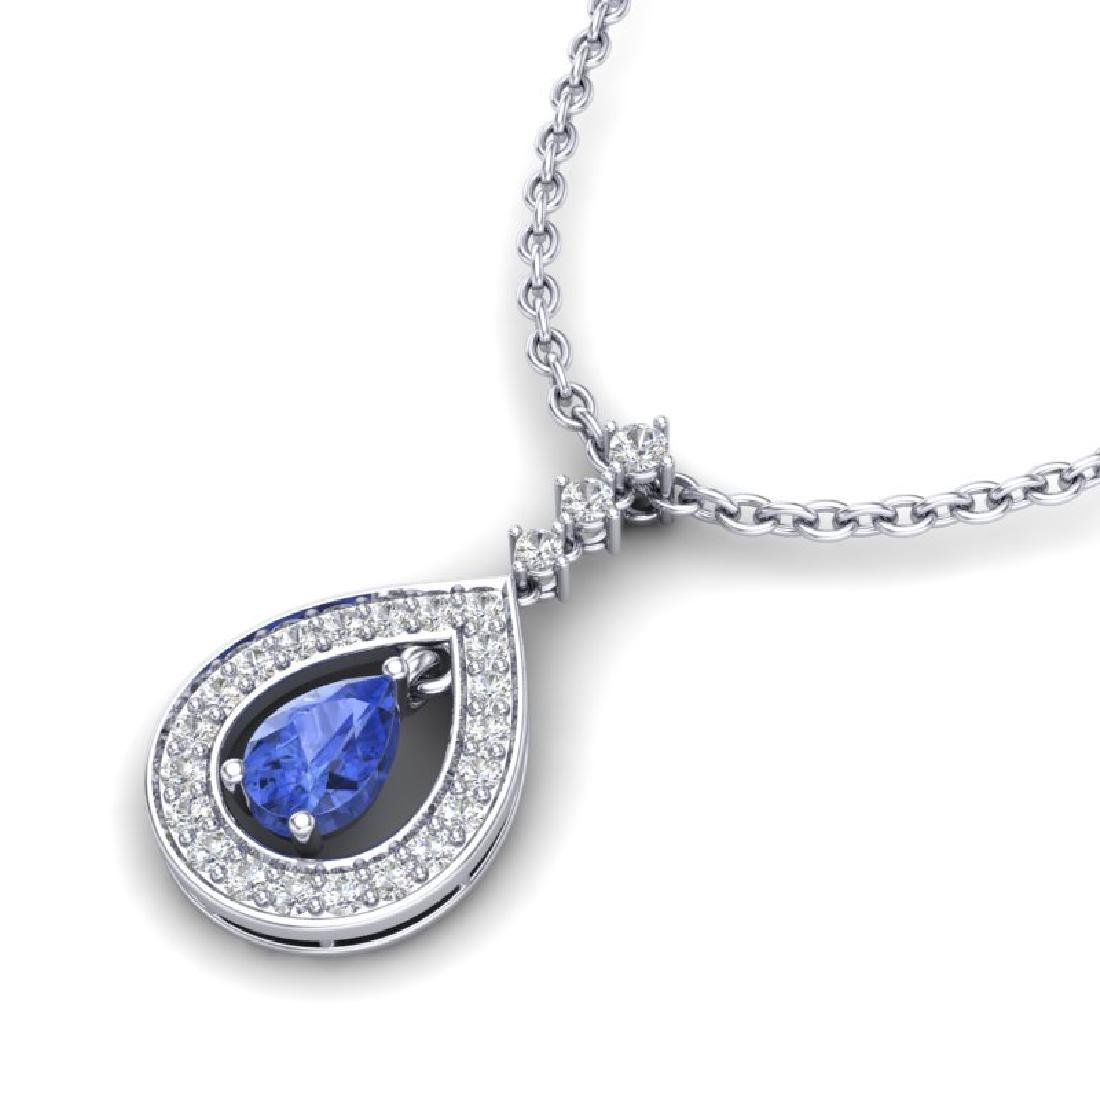 1.15 CTW Tanzanite & Micro Pave VS/SI Diamond Necklace